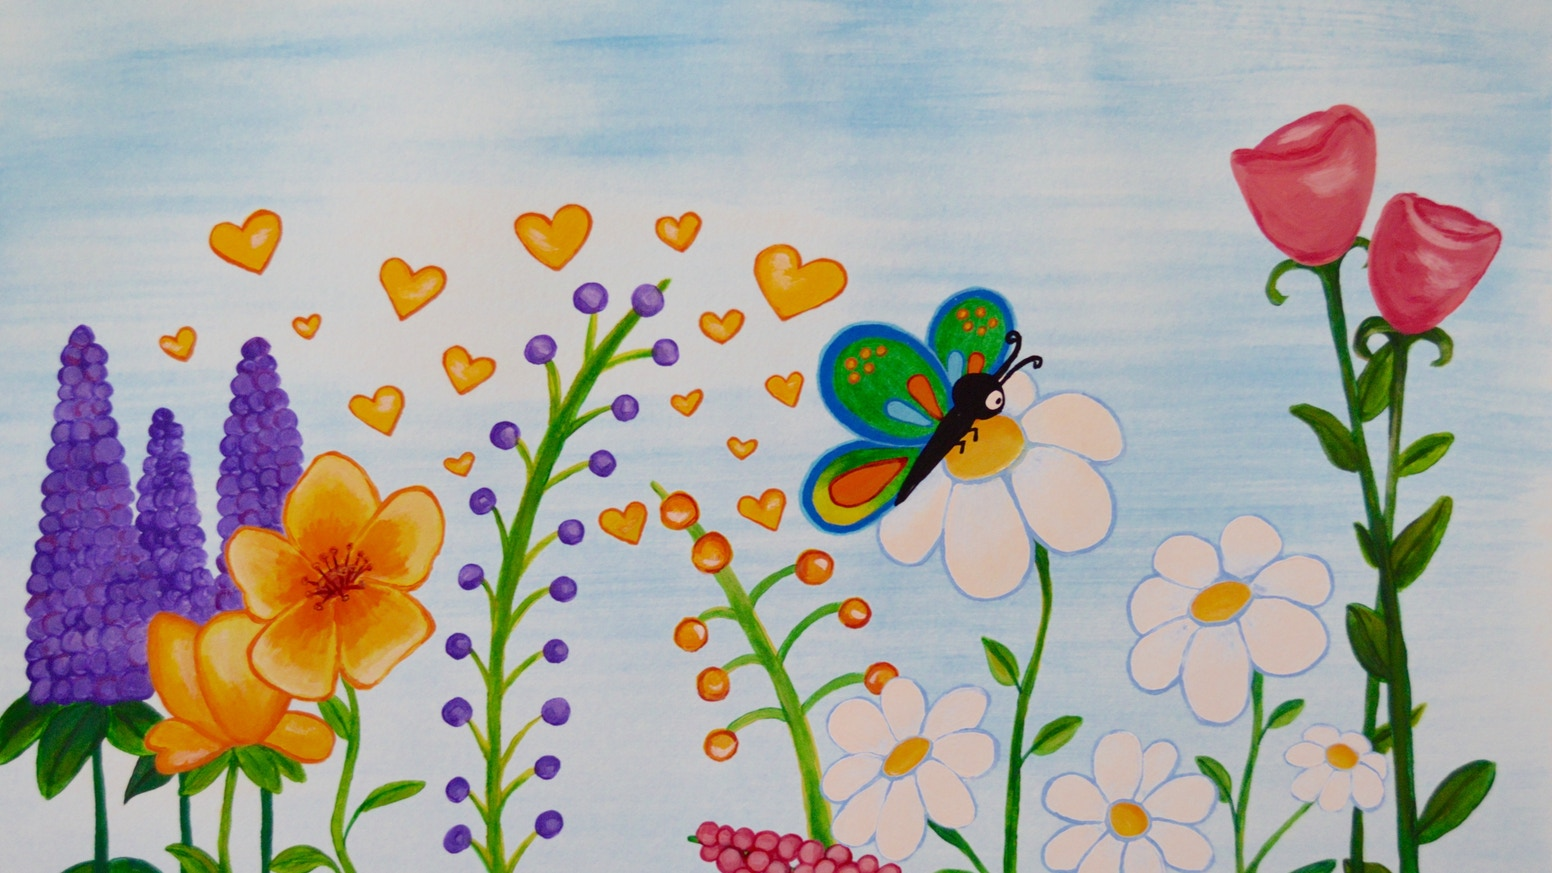 Butterflies Keep Flying is a picture book celebrating the resilience of children suffering from an incurable disease known as EB.